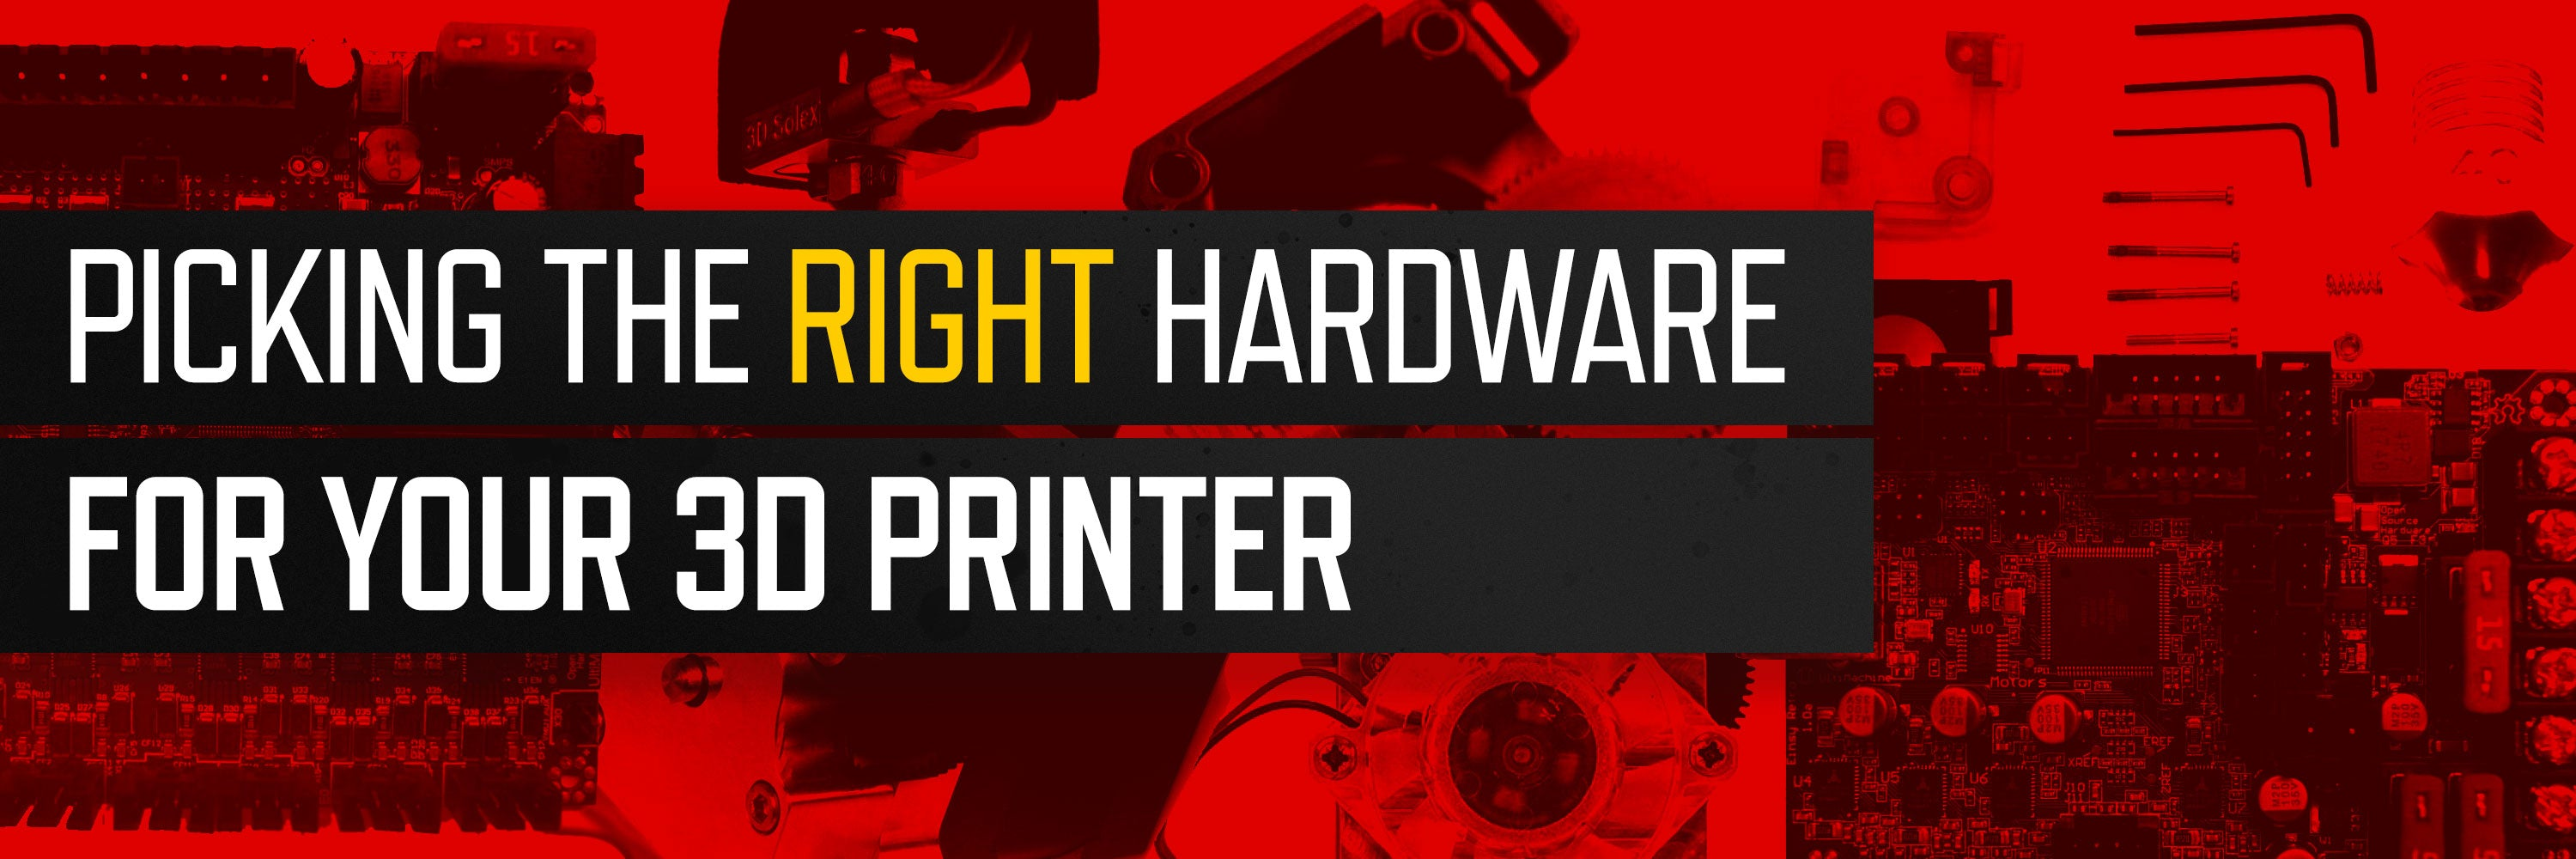 Picking the right hardware for your 3D printer  - Printed Solid